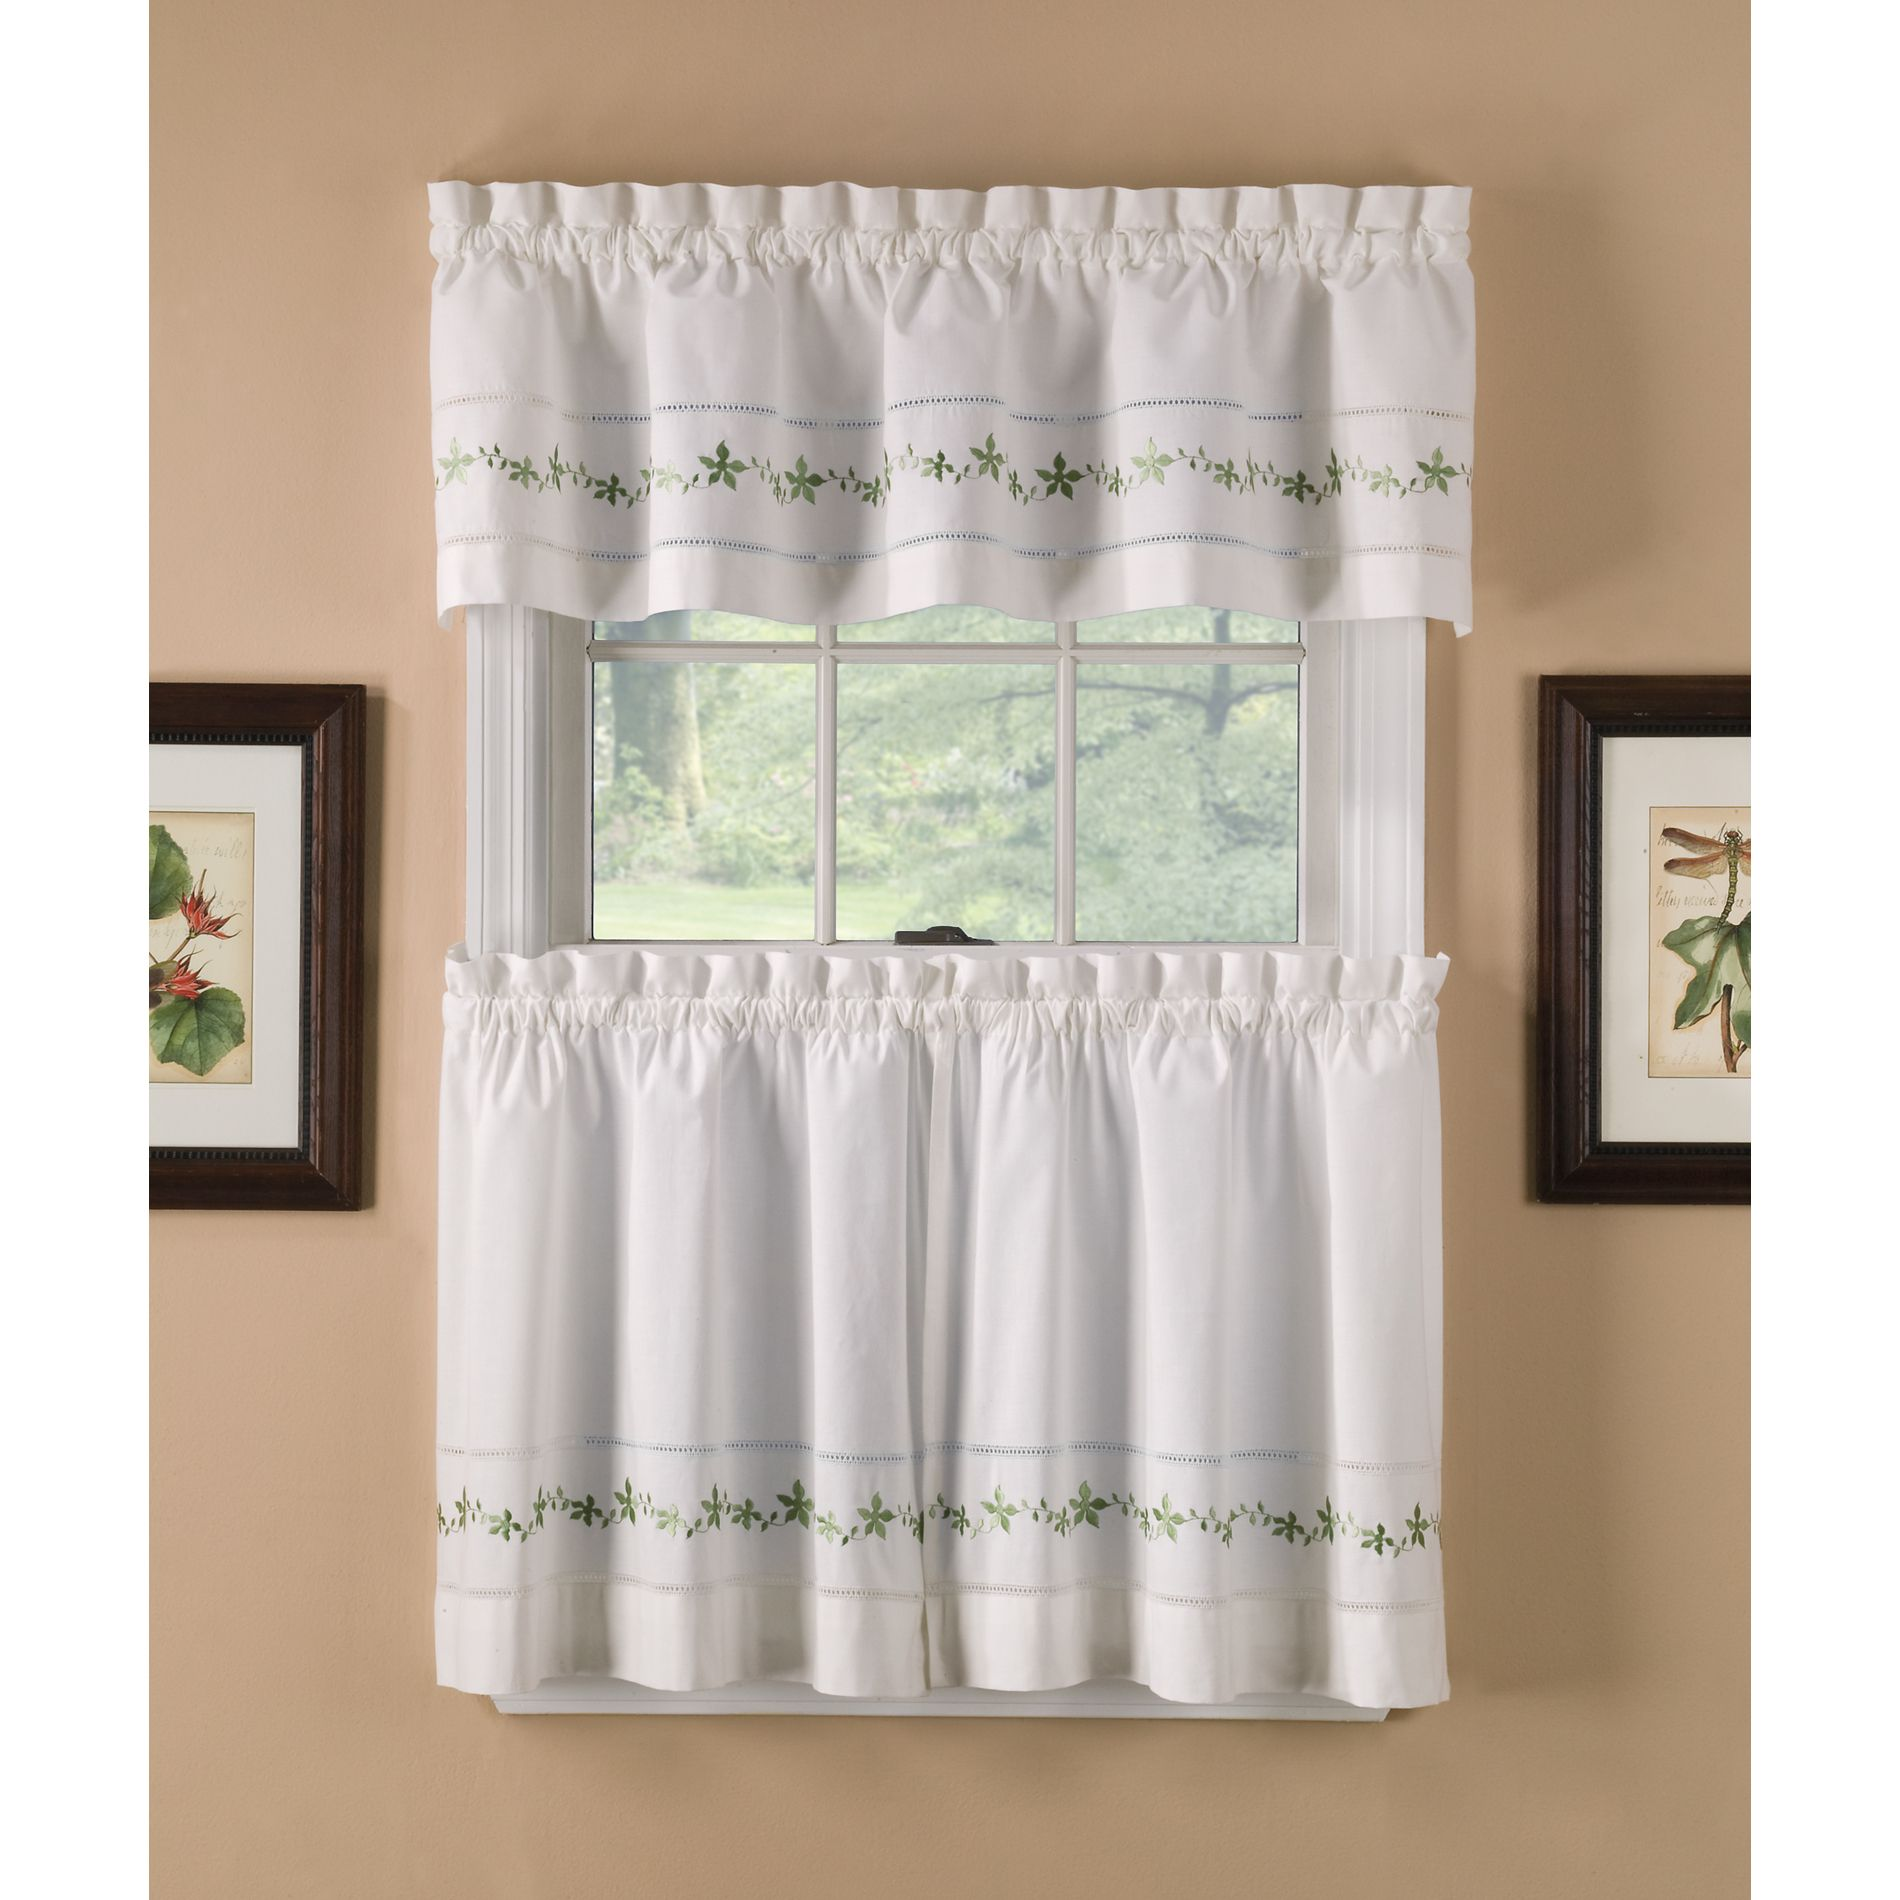 Kmart kitchen curtains – Kitchen ideas